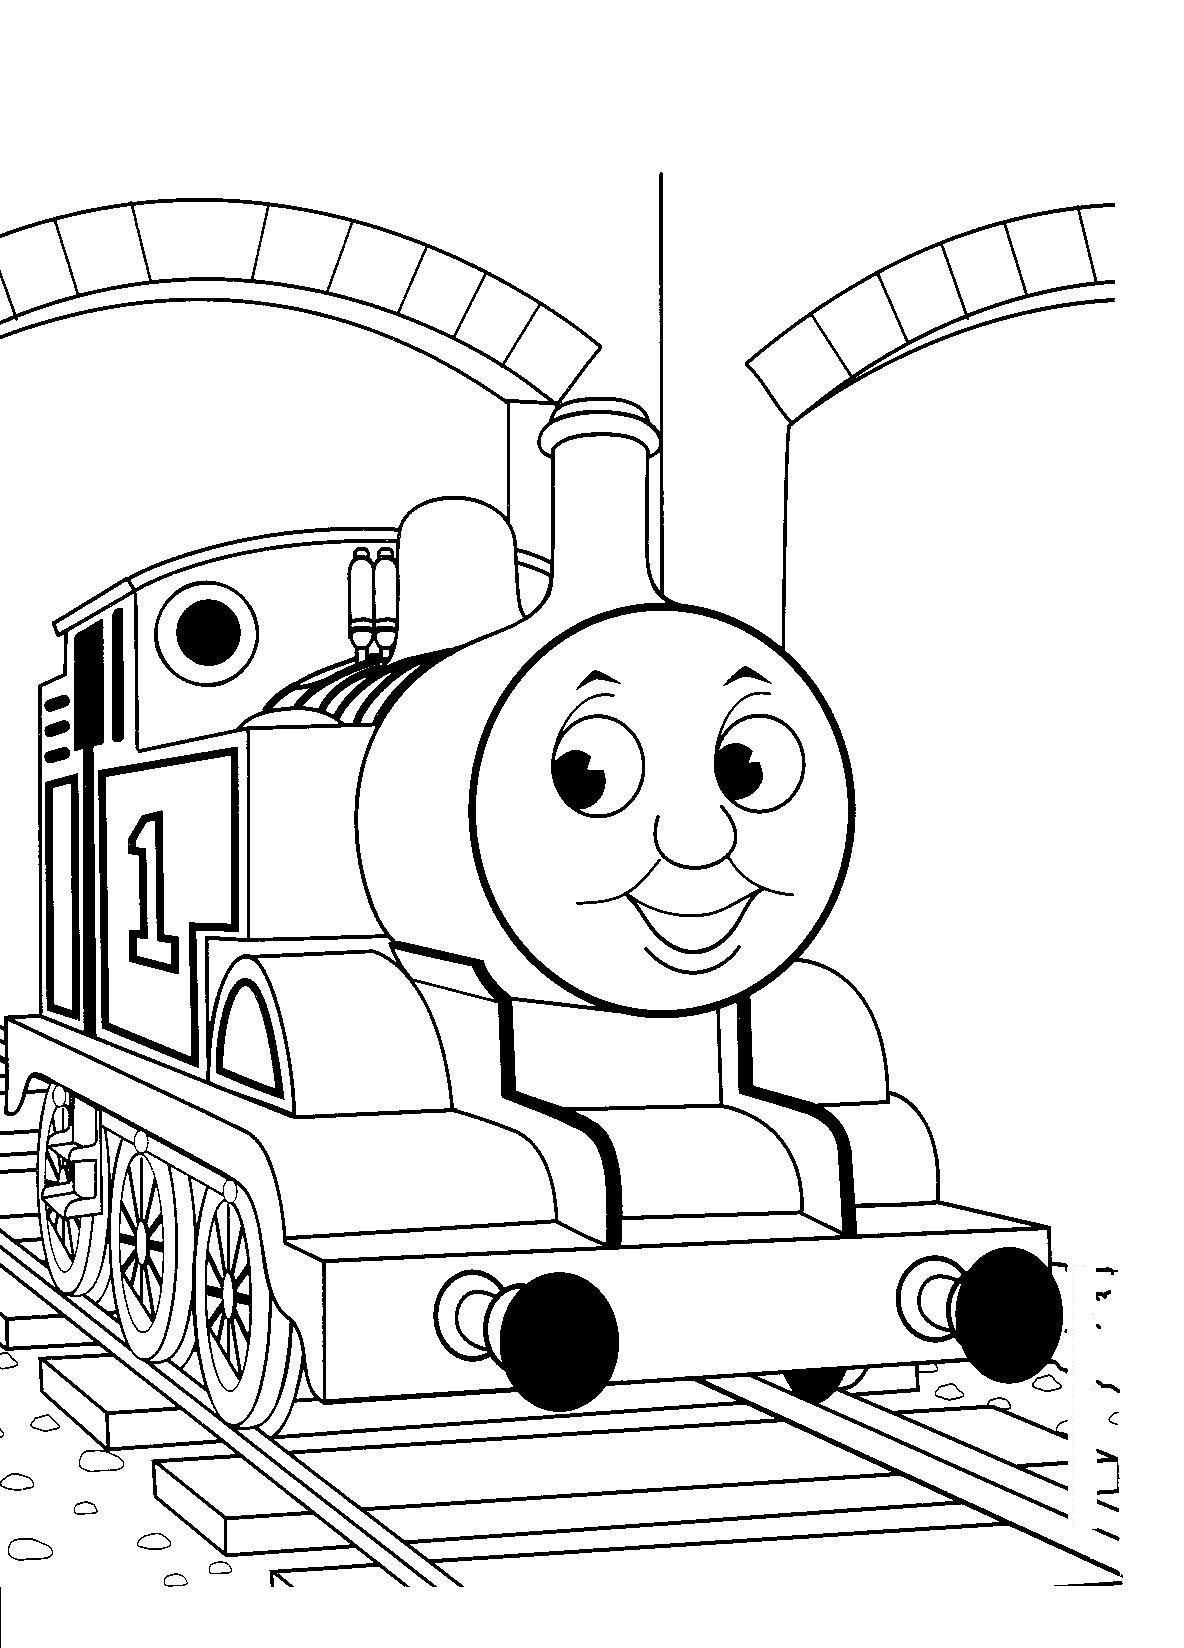 Free Printable Train Coloring Pages For Kids | Logan's 2! | Train - Free Printable Train Pictures